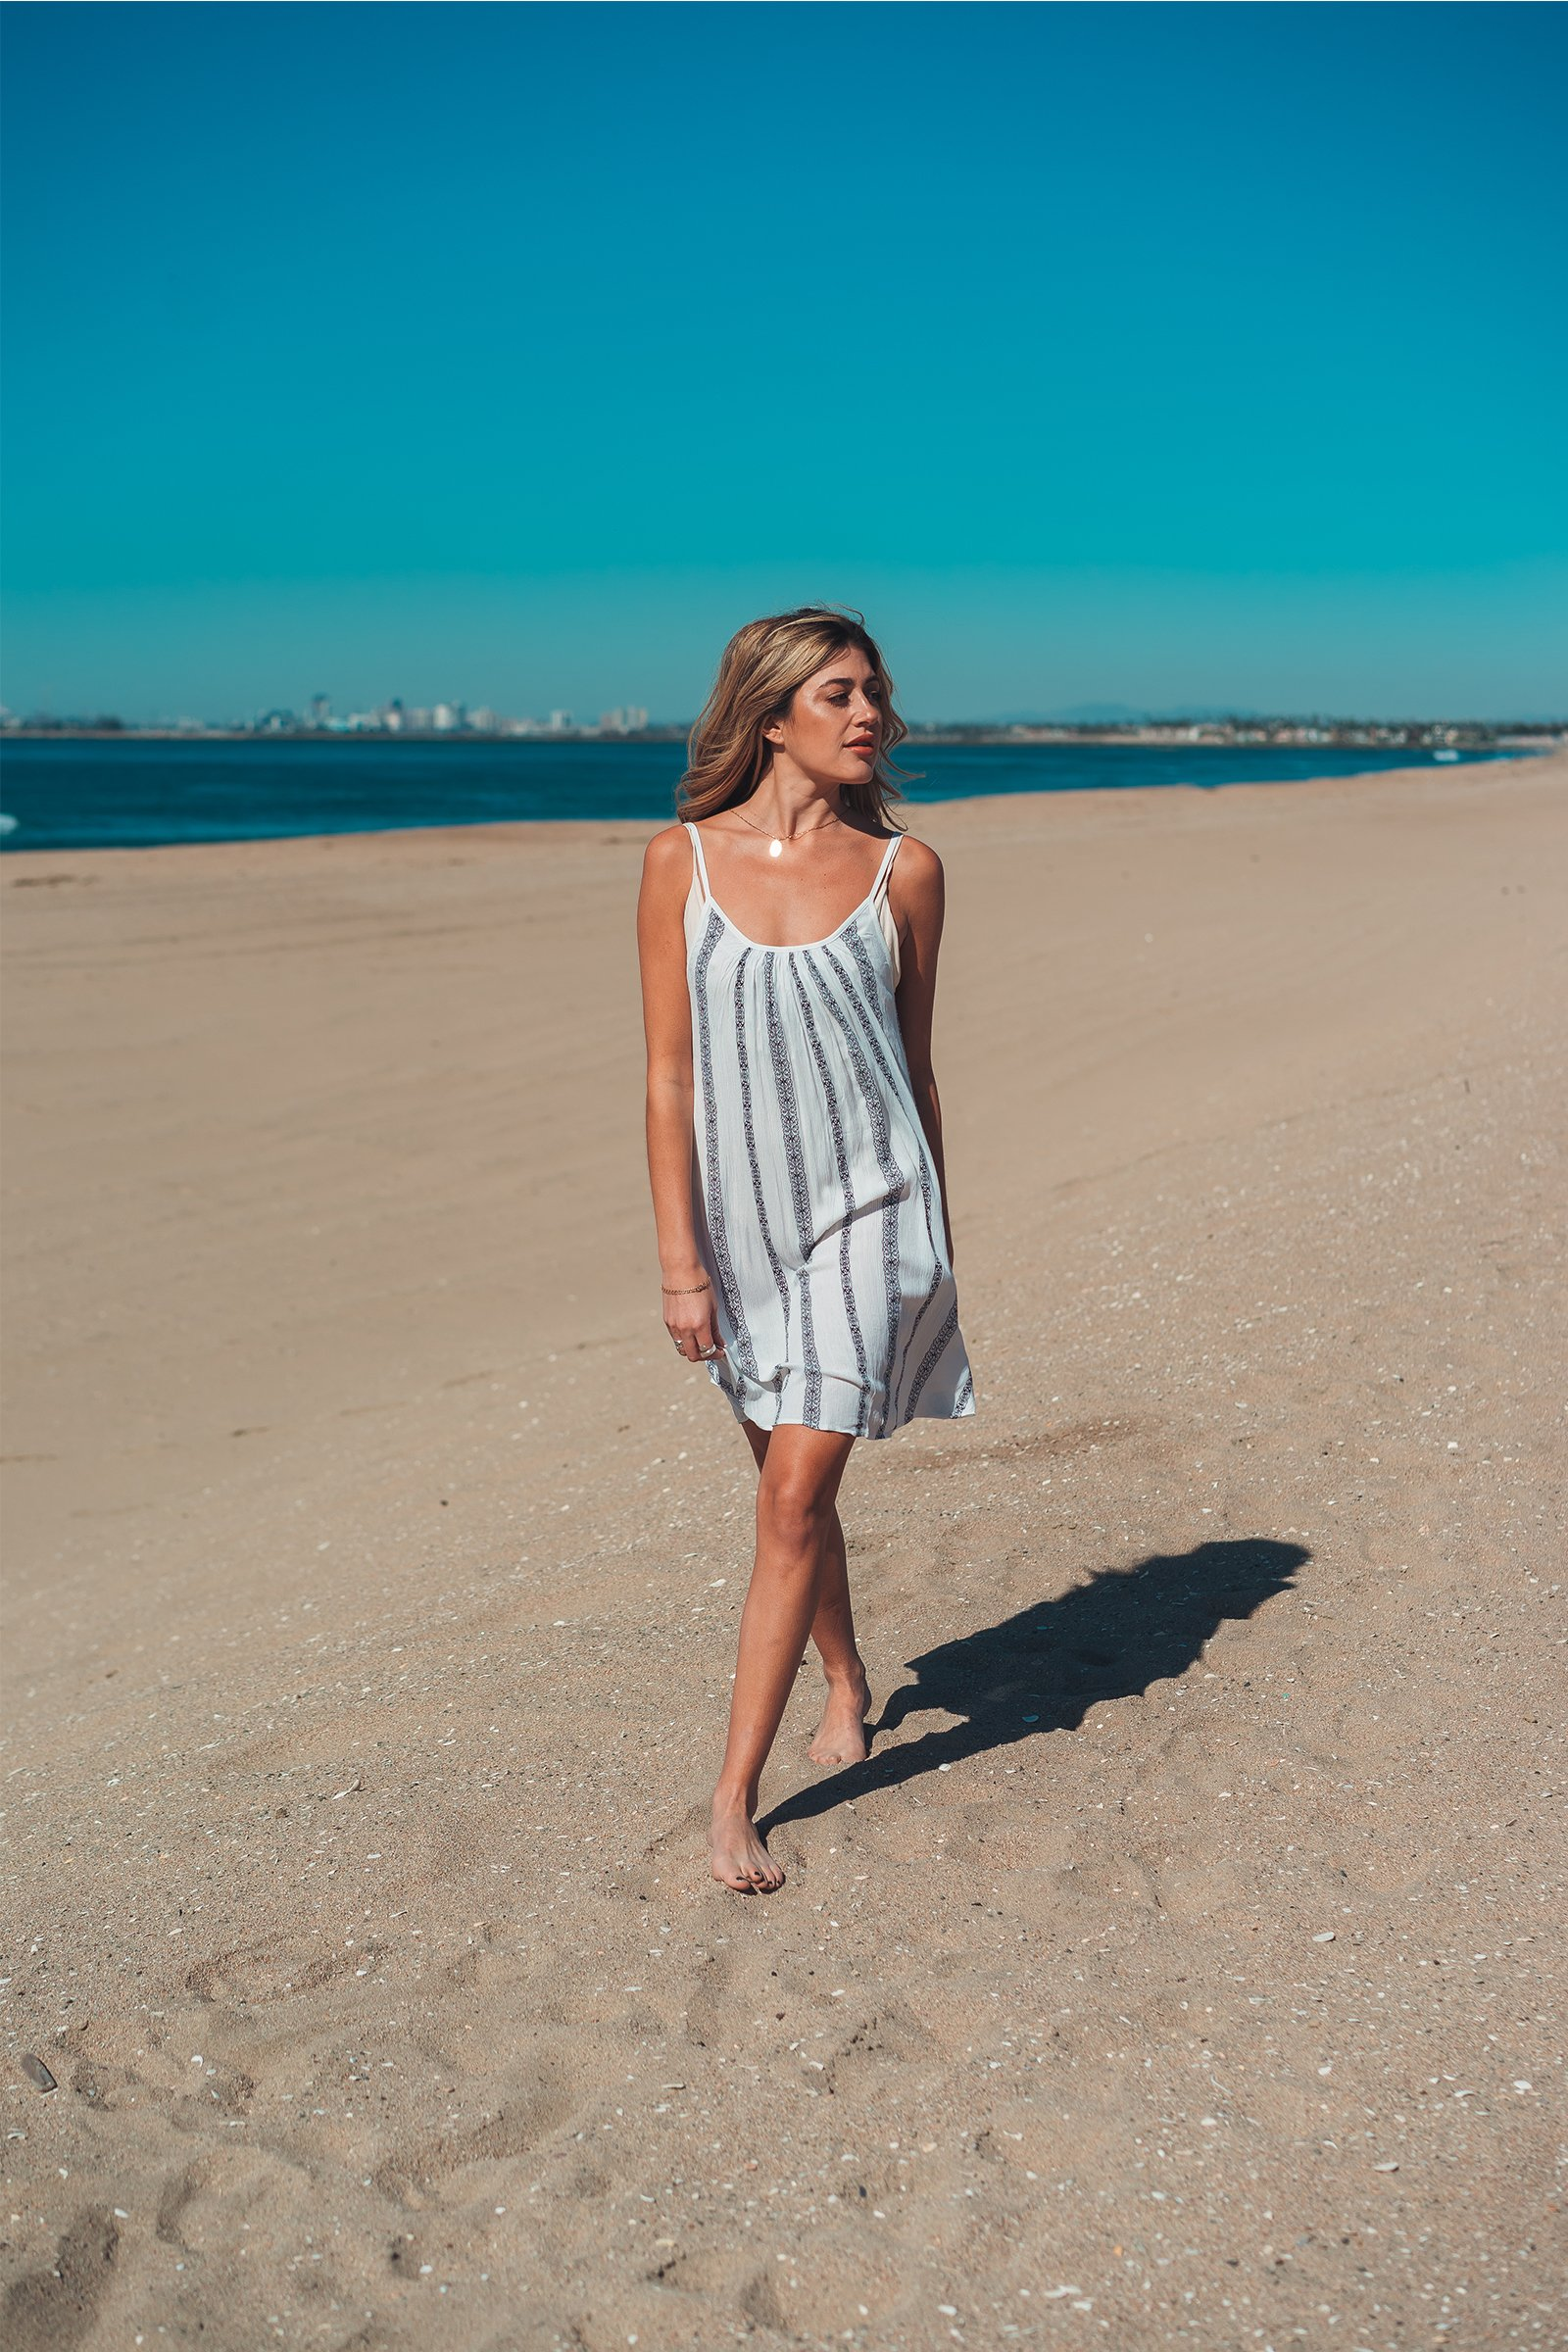 b940951e7ac2 A scoop back beach cover-up in a nautical stripe print with adjustable spaghetti  straps. Wear it in the day into the night! Model is 5 10 wearing size S. ...